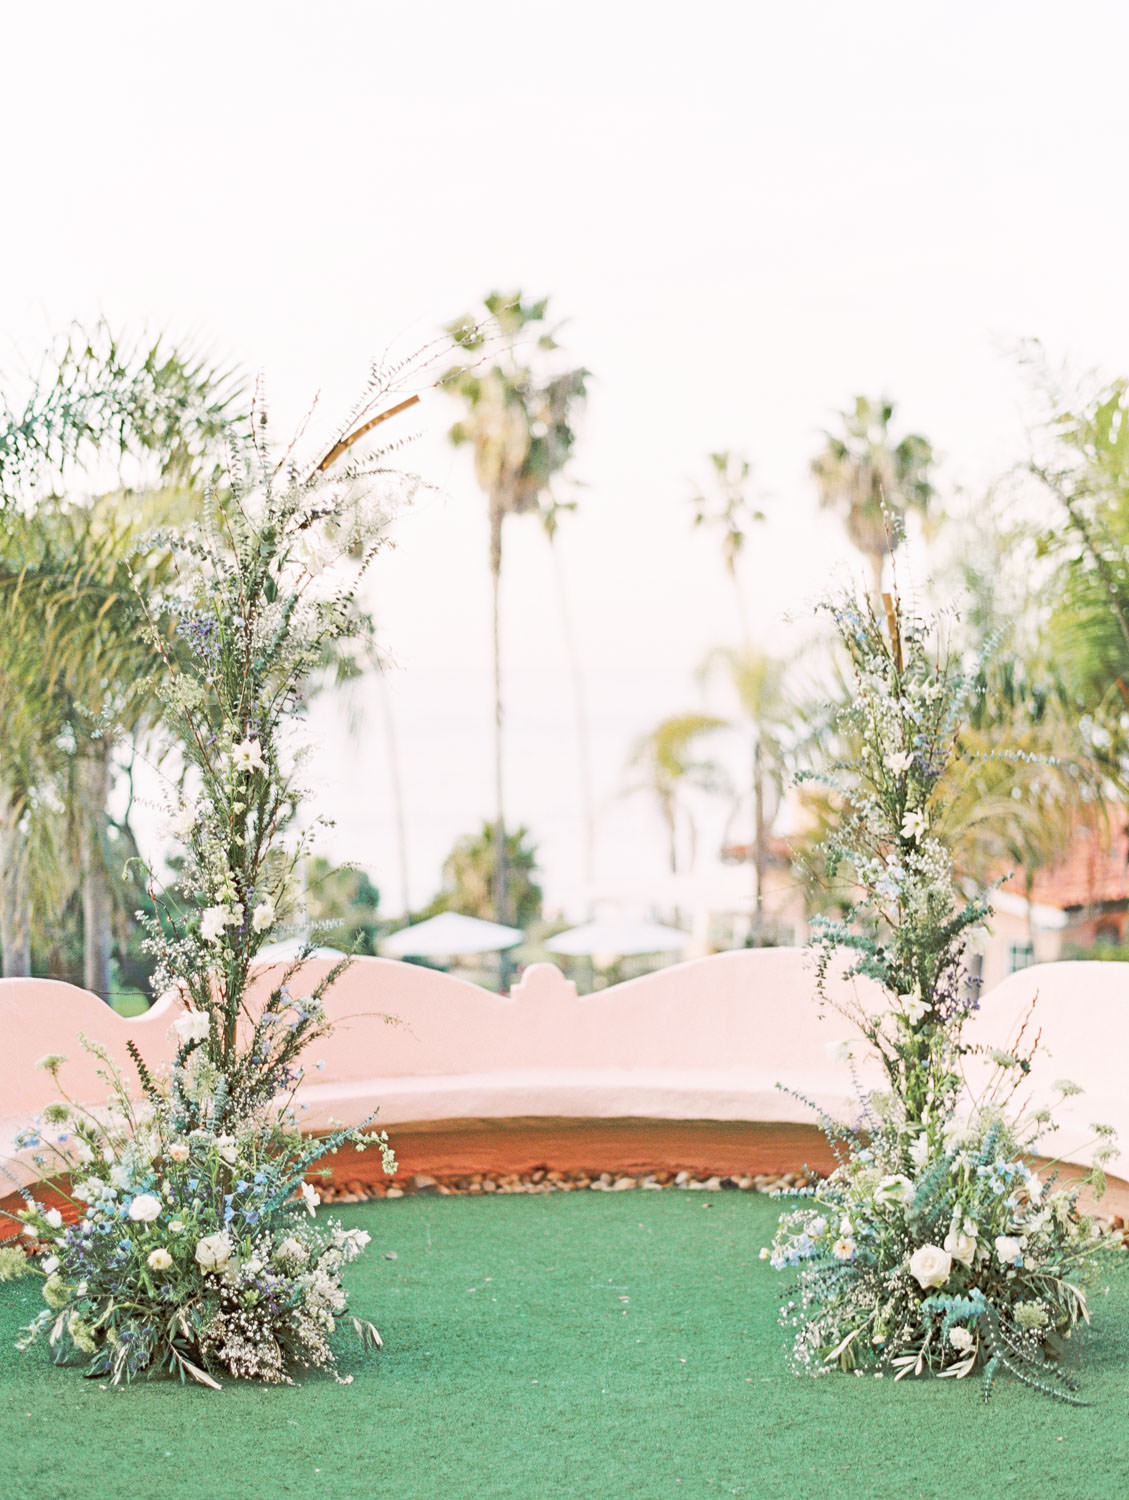 Wedding ceremony on lawn surrounded by pink benches and ocean view, ceremony arch with organic green, ivory, and blue tall floral arrangements, Intimate Wedding at La Valencia Hotel in La Jolla by Cavin Elizabeth Photography